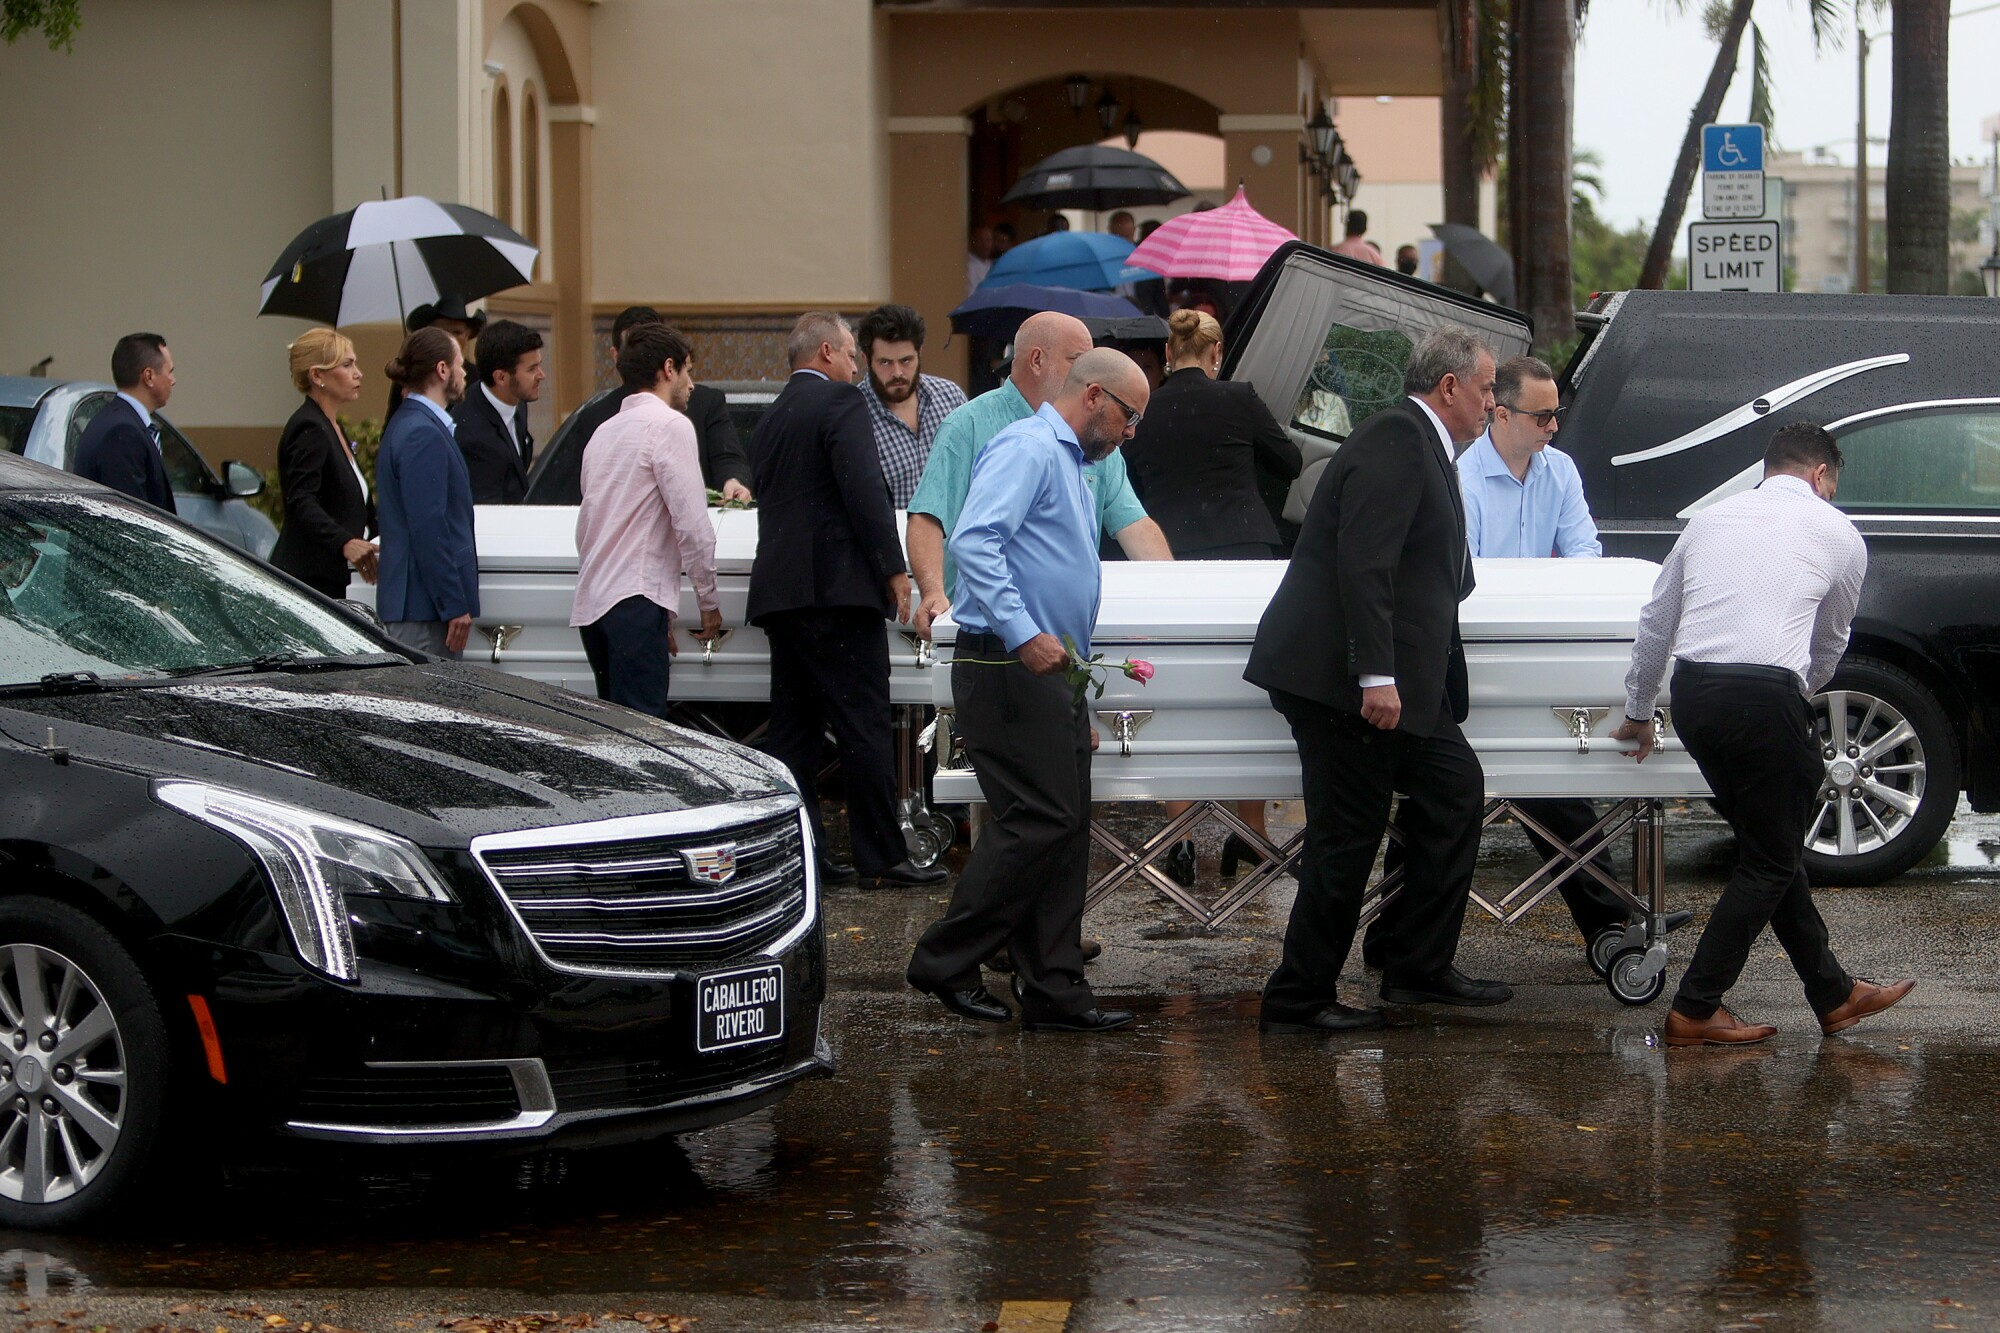 Pallbearers bring caskets to the hearse after the funeral at St. Joseph Catholic Church.